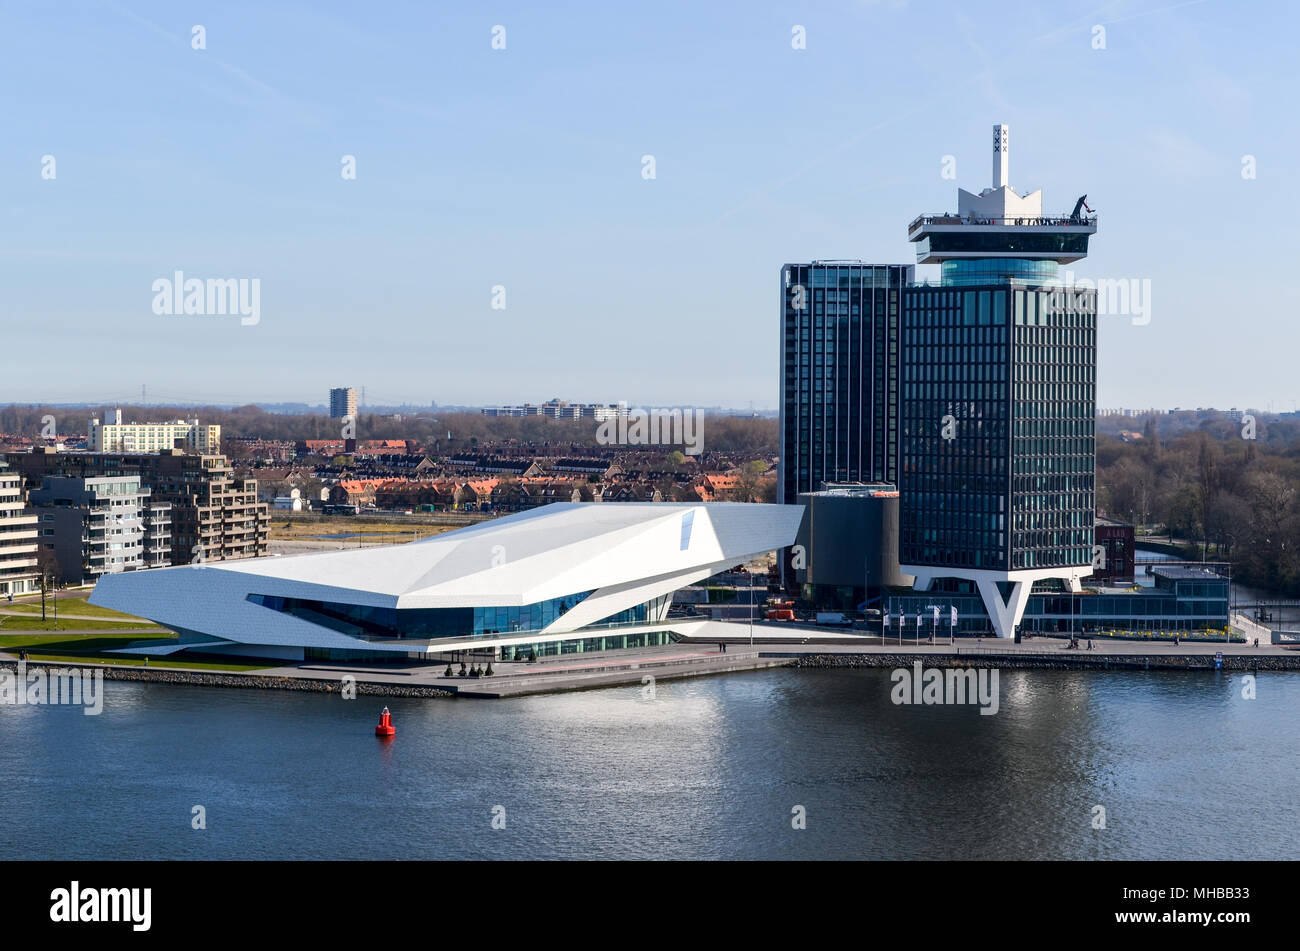 Aerial view of the EYE museum and the A'DAM Lookout tower, framed with blue sky and the IJ river, Amsterdam, Netherlands - Stock Image